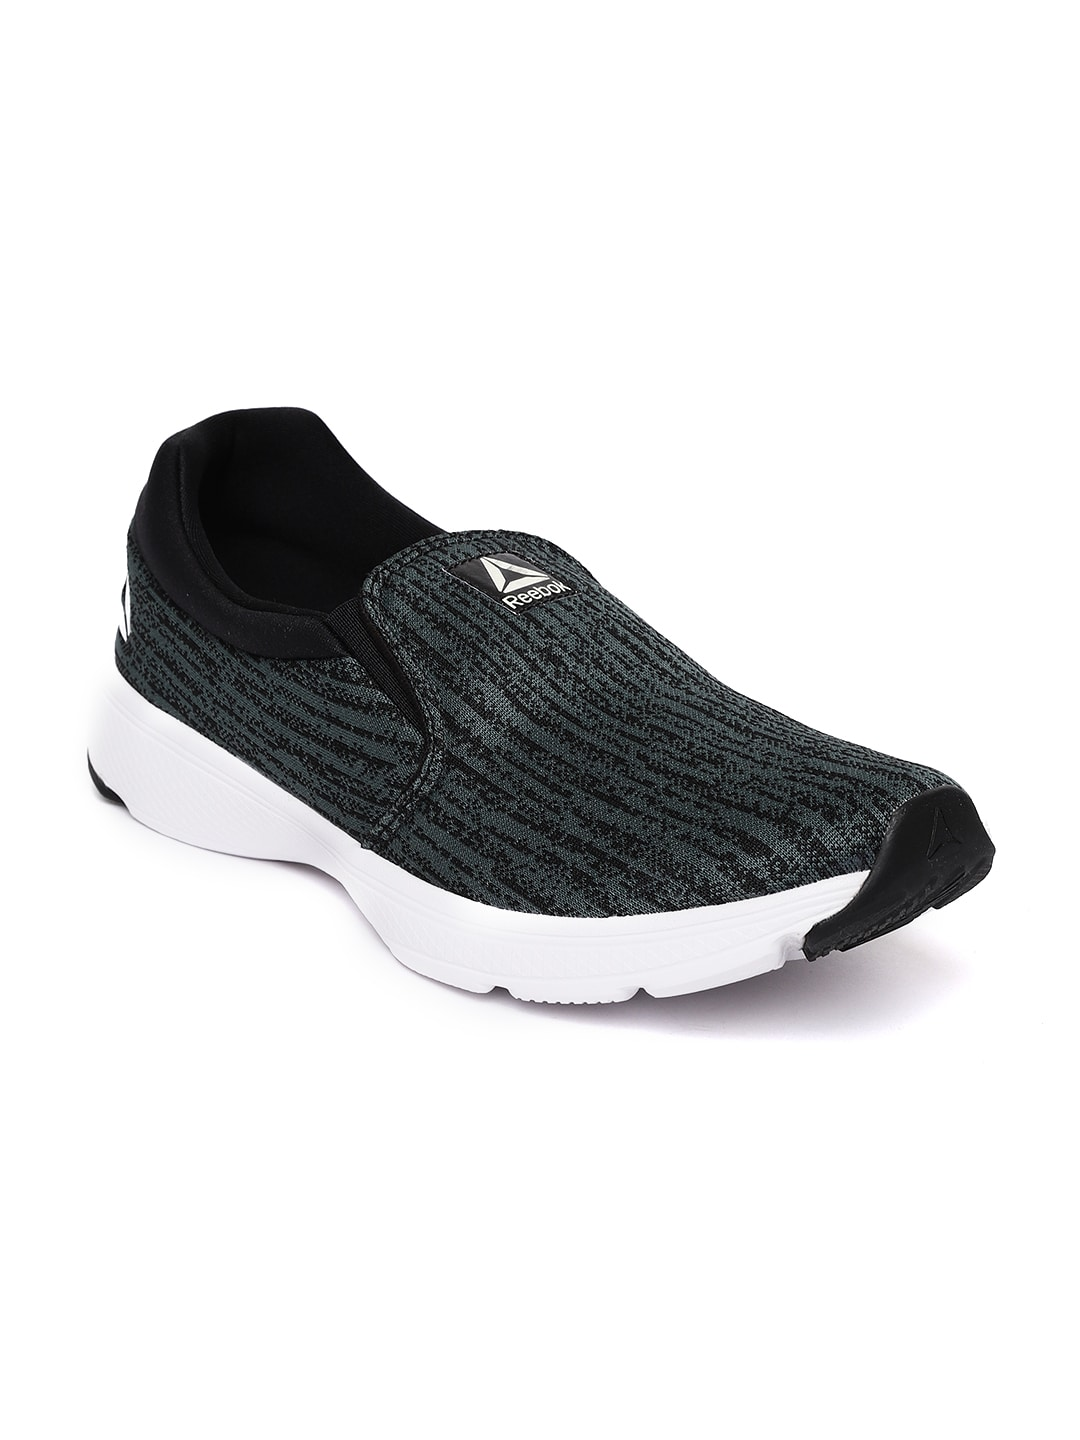 51c5fd89c Reebok Slip Only Shoes - Buy Reebok Slip Only Shoes online in India